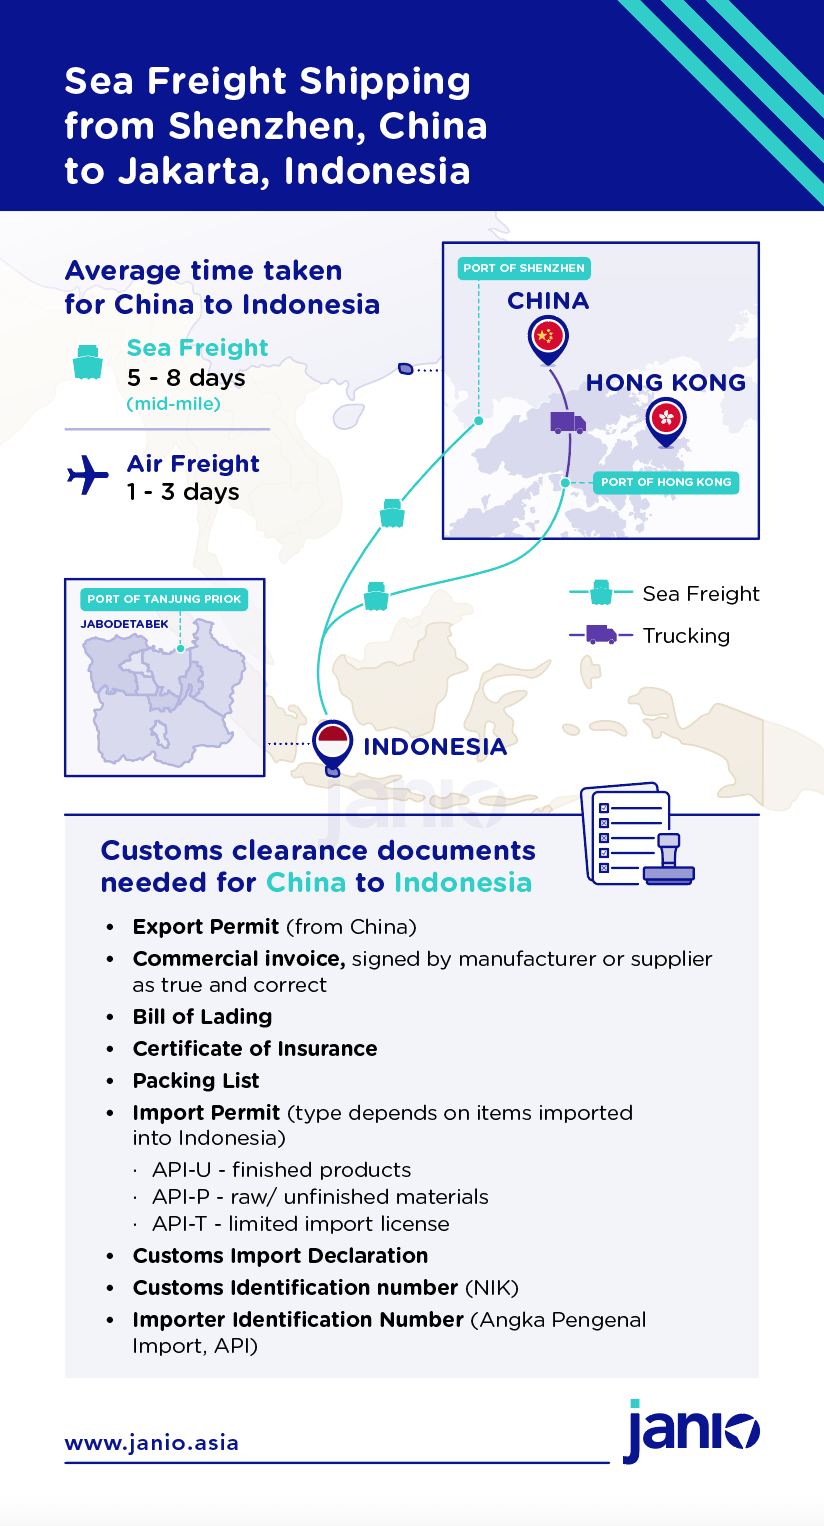 Shipping via sea freight from Shenzhen, China, to Jakarta, Indonesia